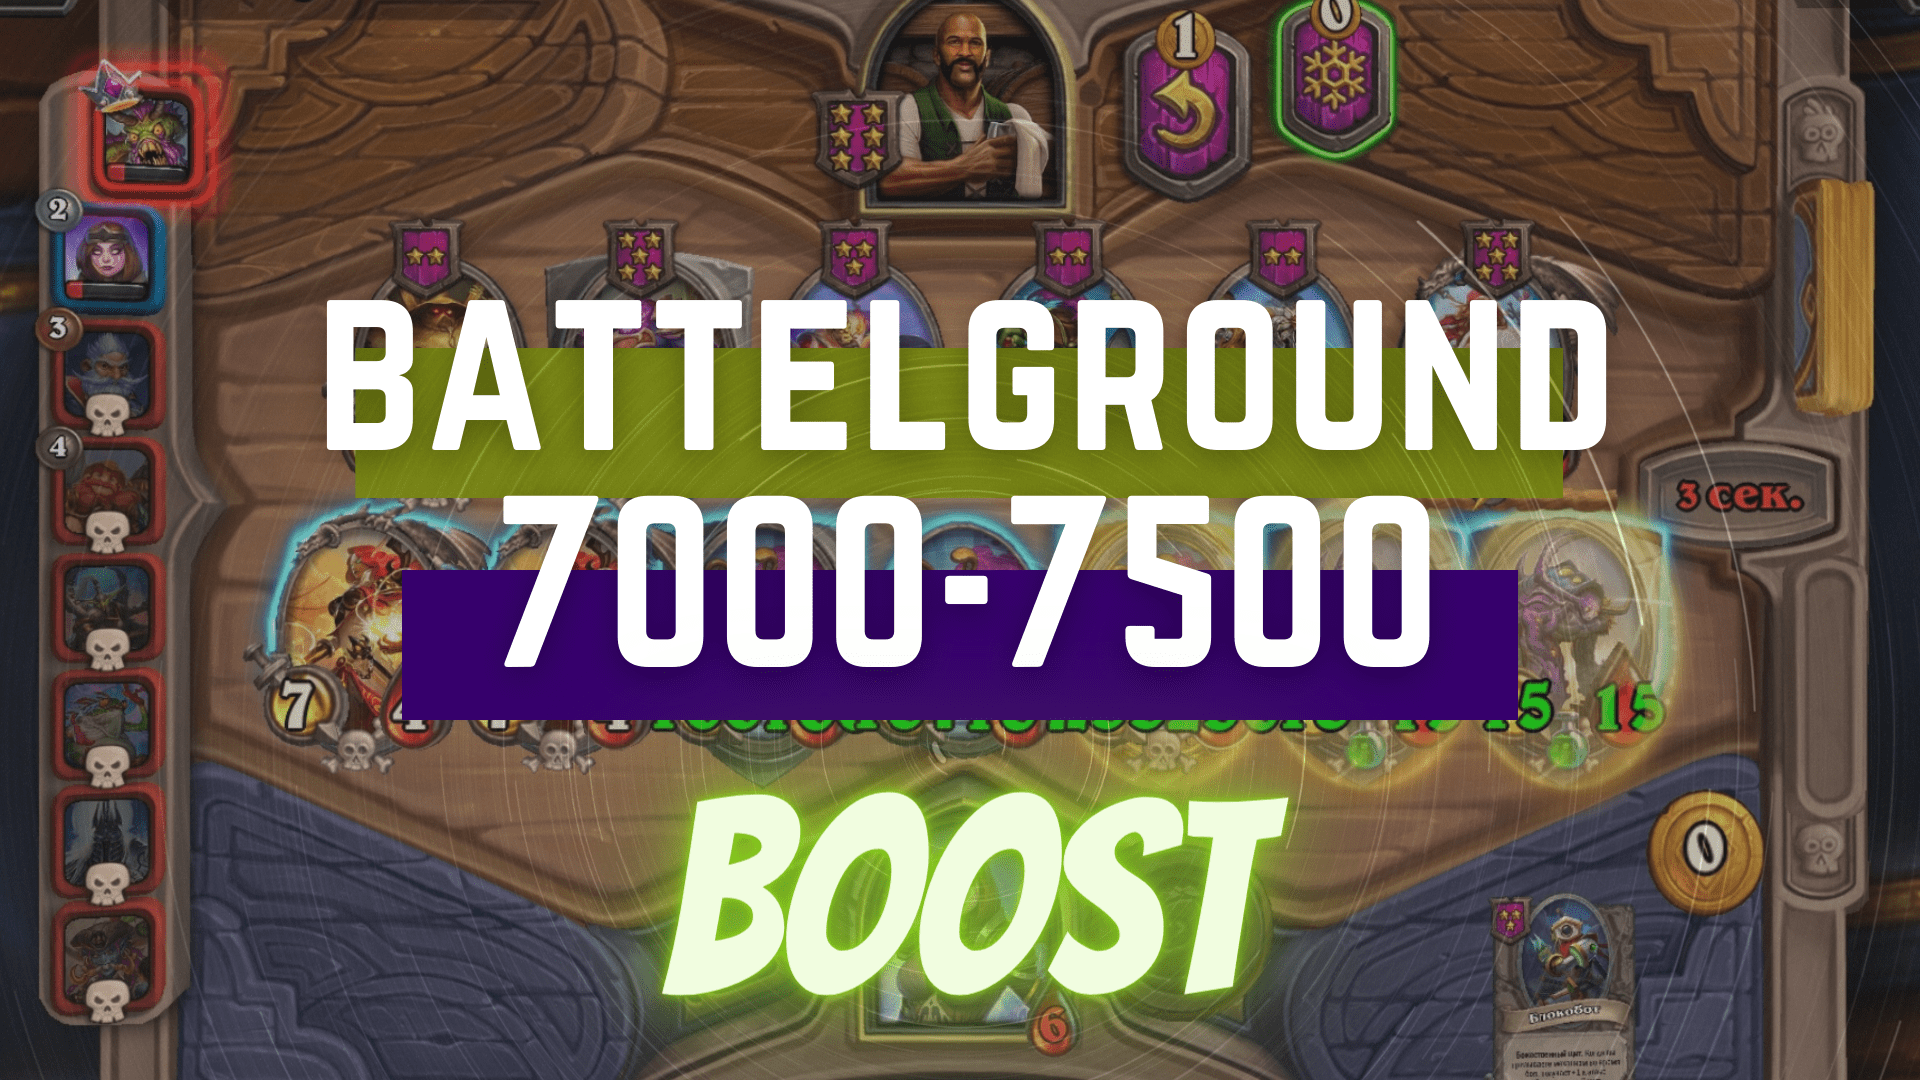 [BATTLEGROUNDS RATING] BOOST FROM 7000 TO 7500 Zafari - e2p.com